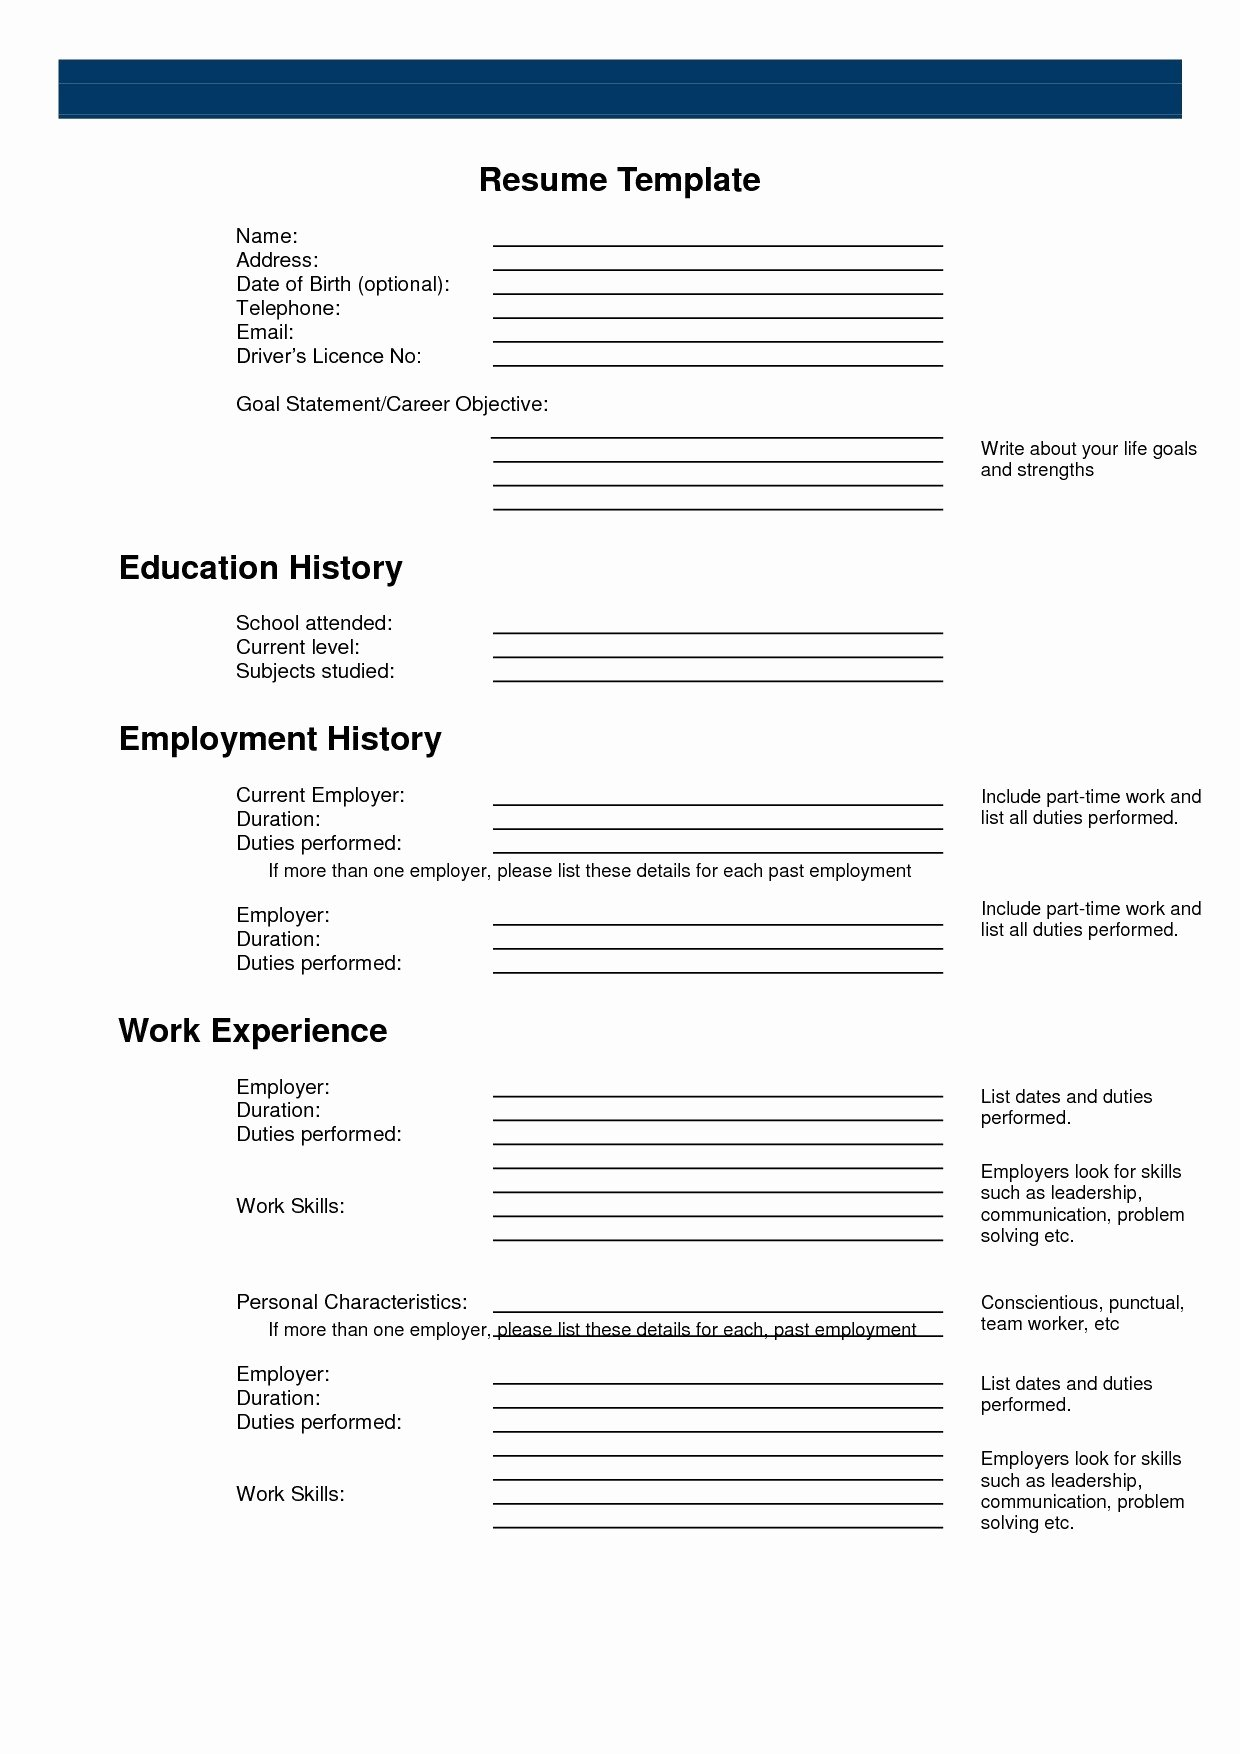 Resume Builder Free Download 2017